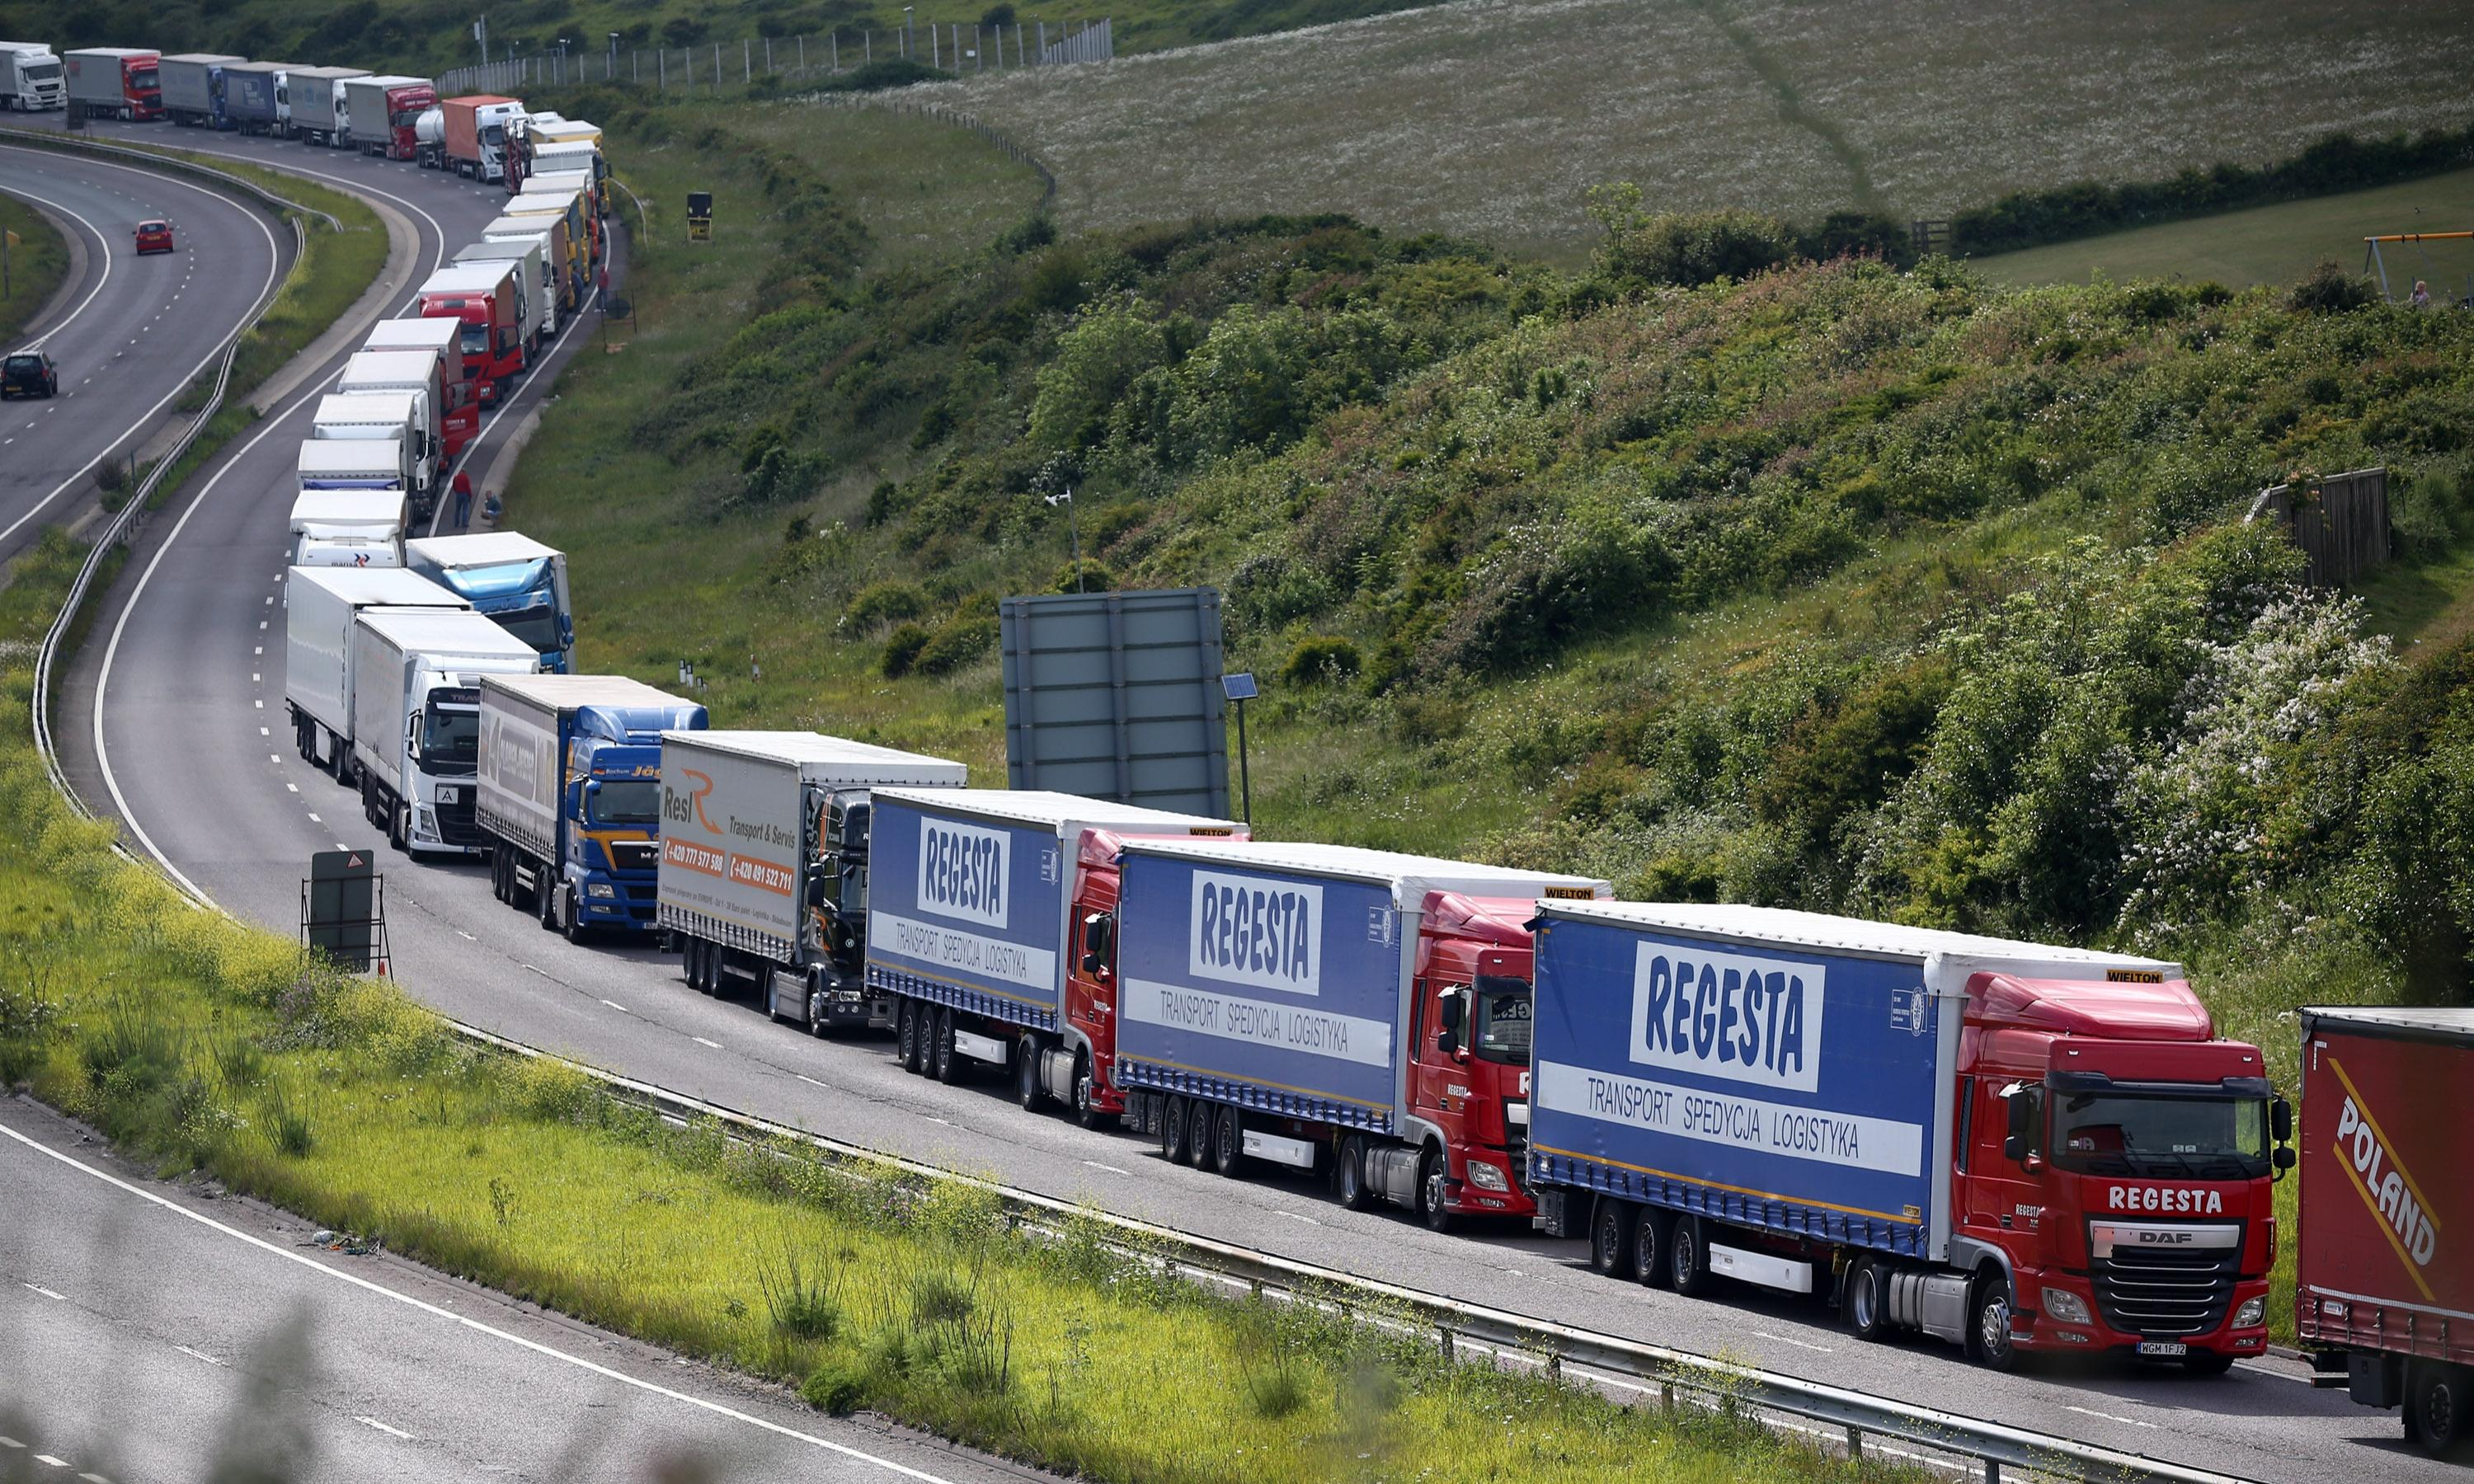 MoD sends planners to ministries over post-Brexit border fears